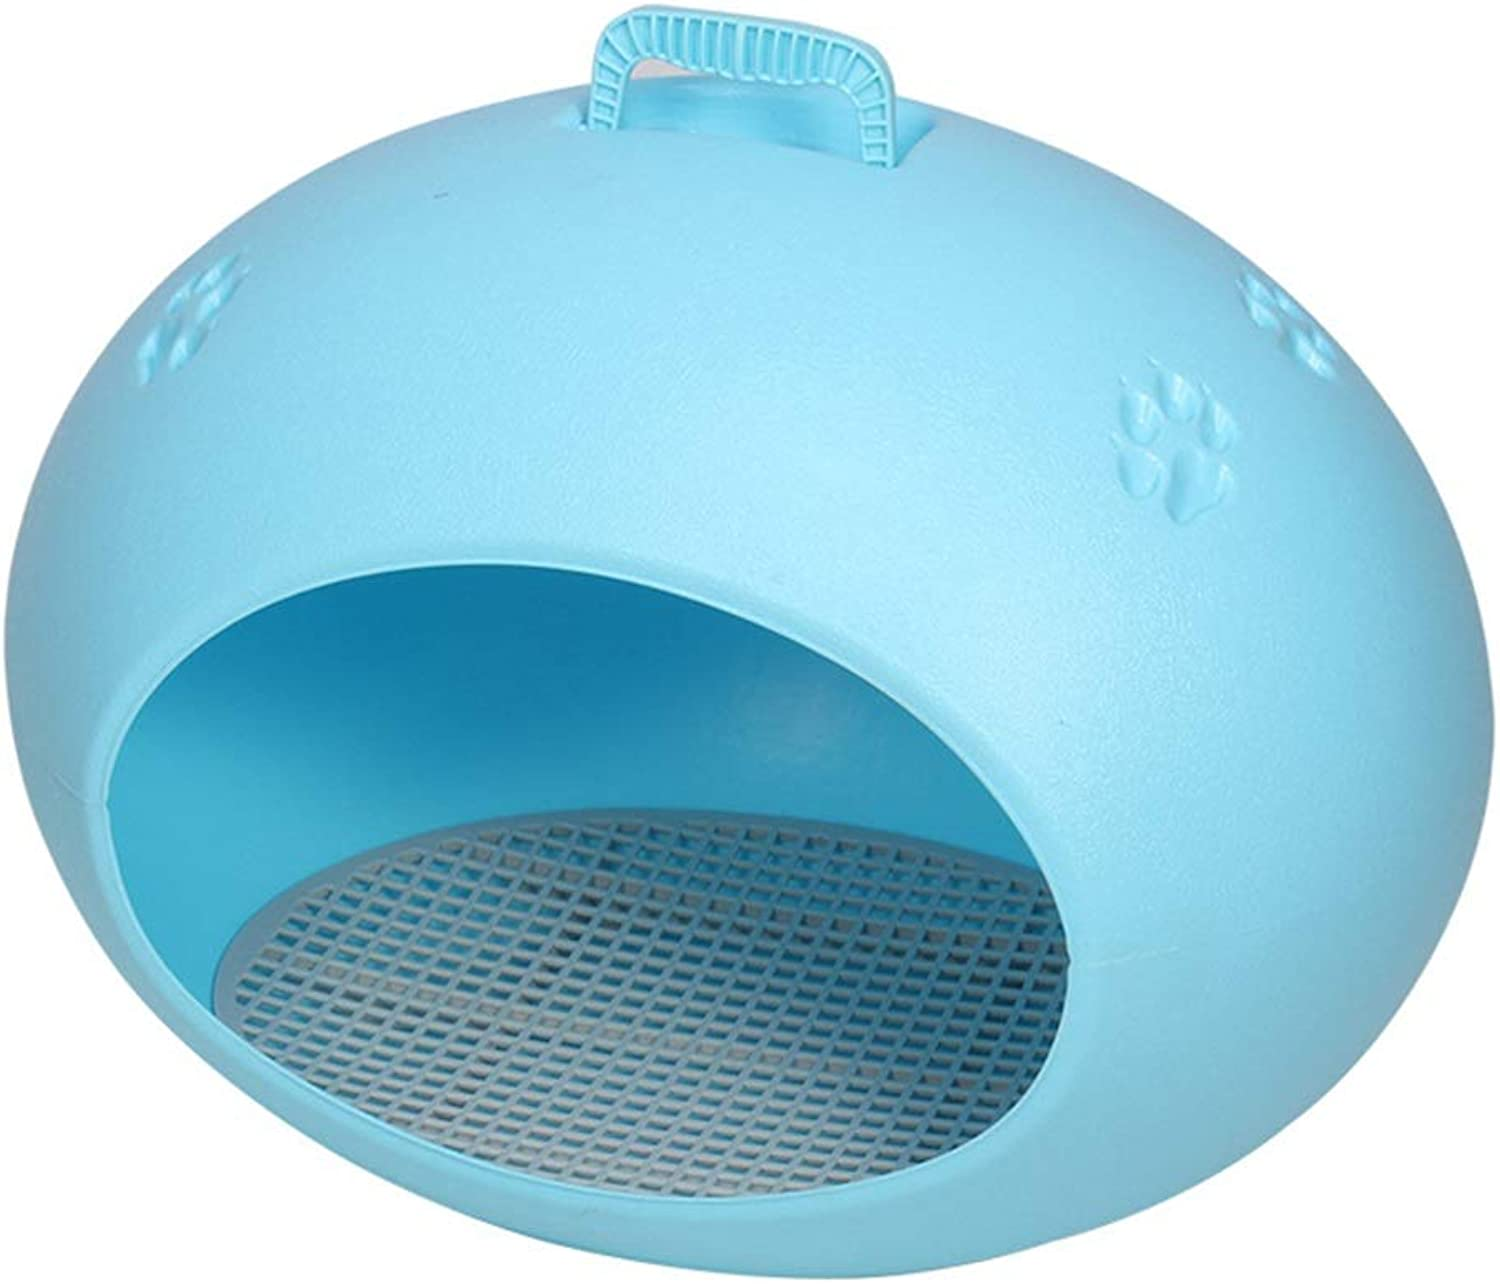 Personalized Rainproof Plastic EggShaped Dog Bed Pet Nest Warm Cat Nest Suitable for Cats and Dogs to Rest